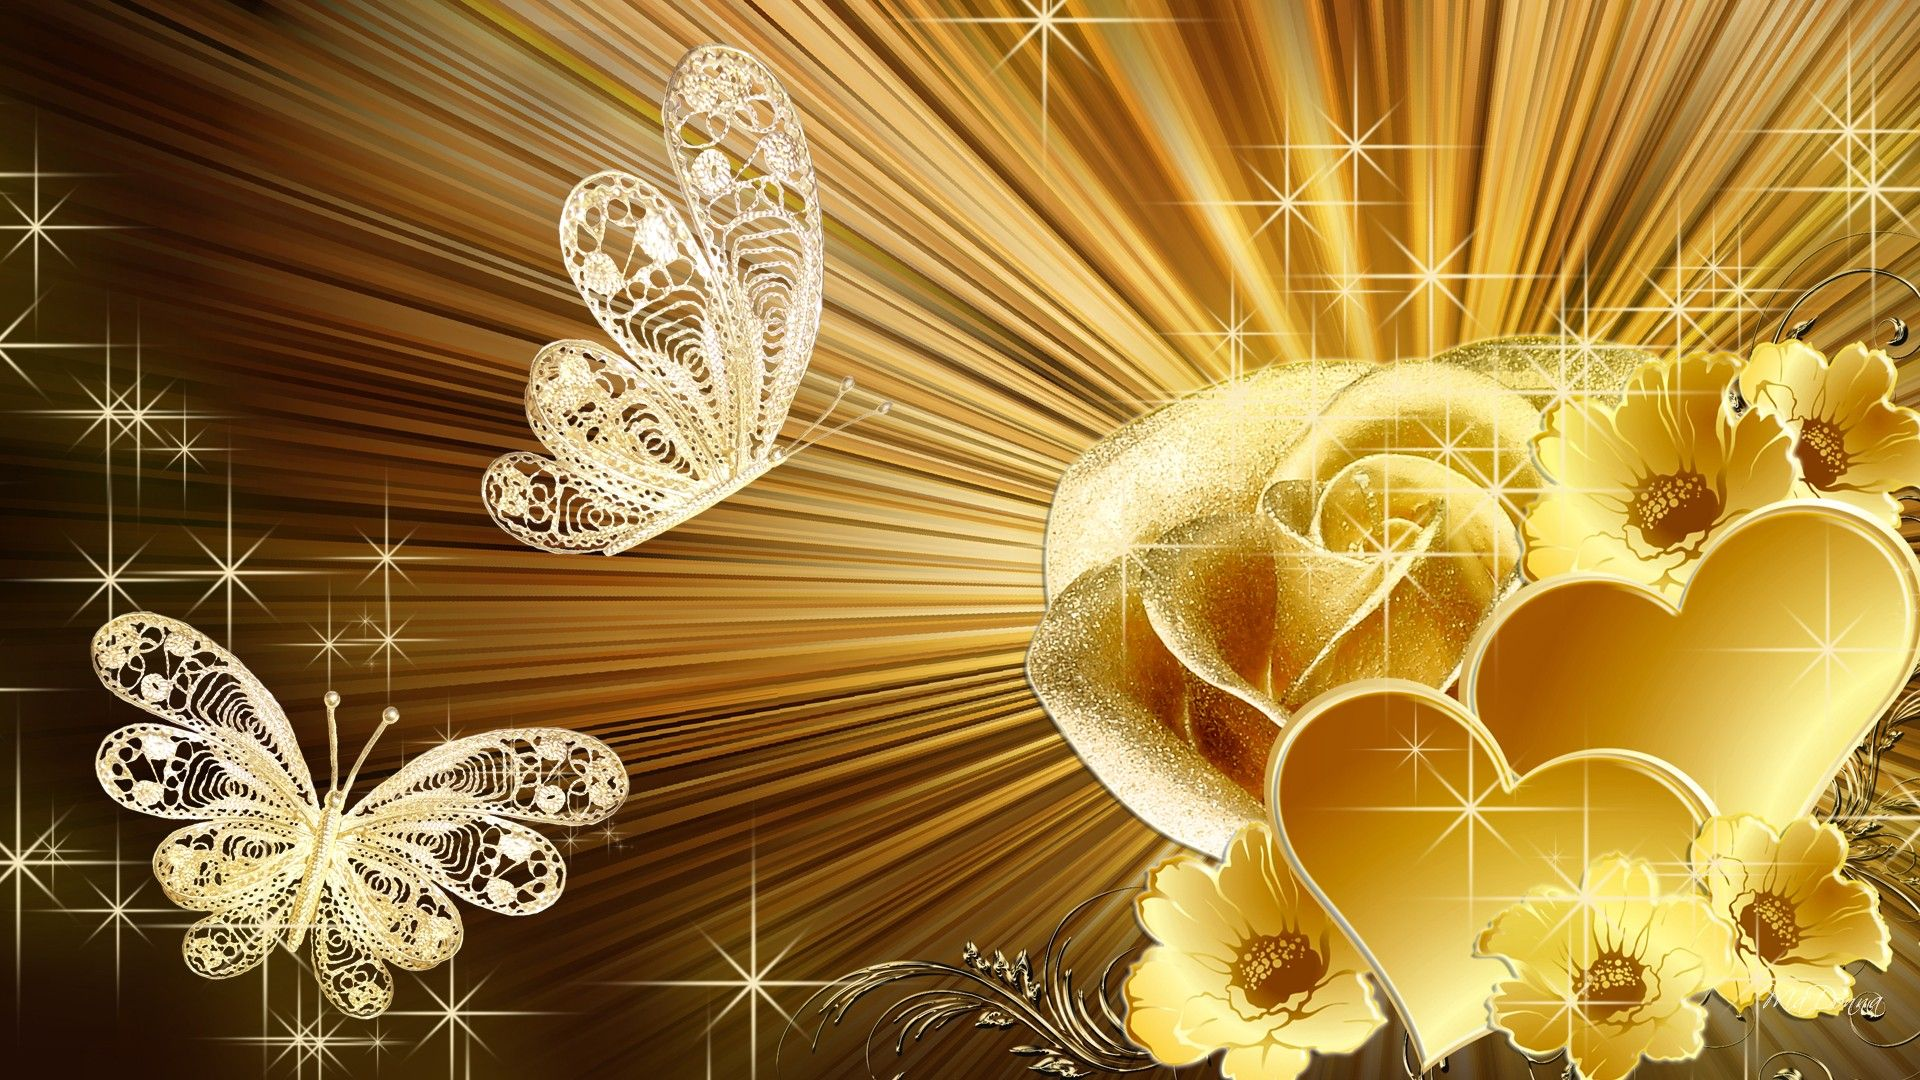 Golden Rose Hd Desktop Background Wallpaper Free In 2019